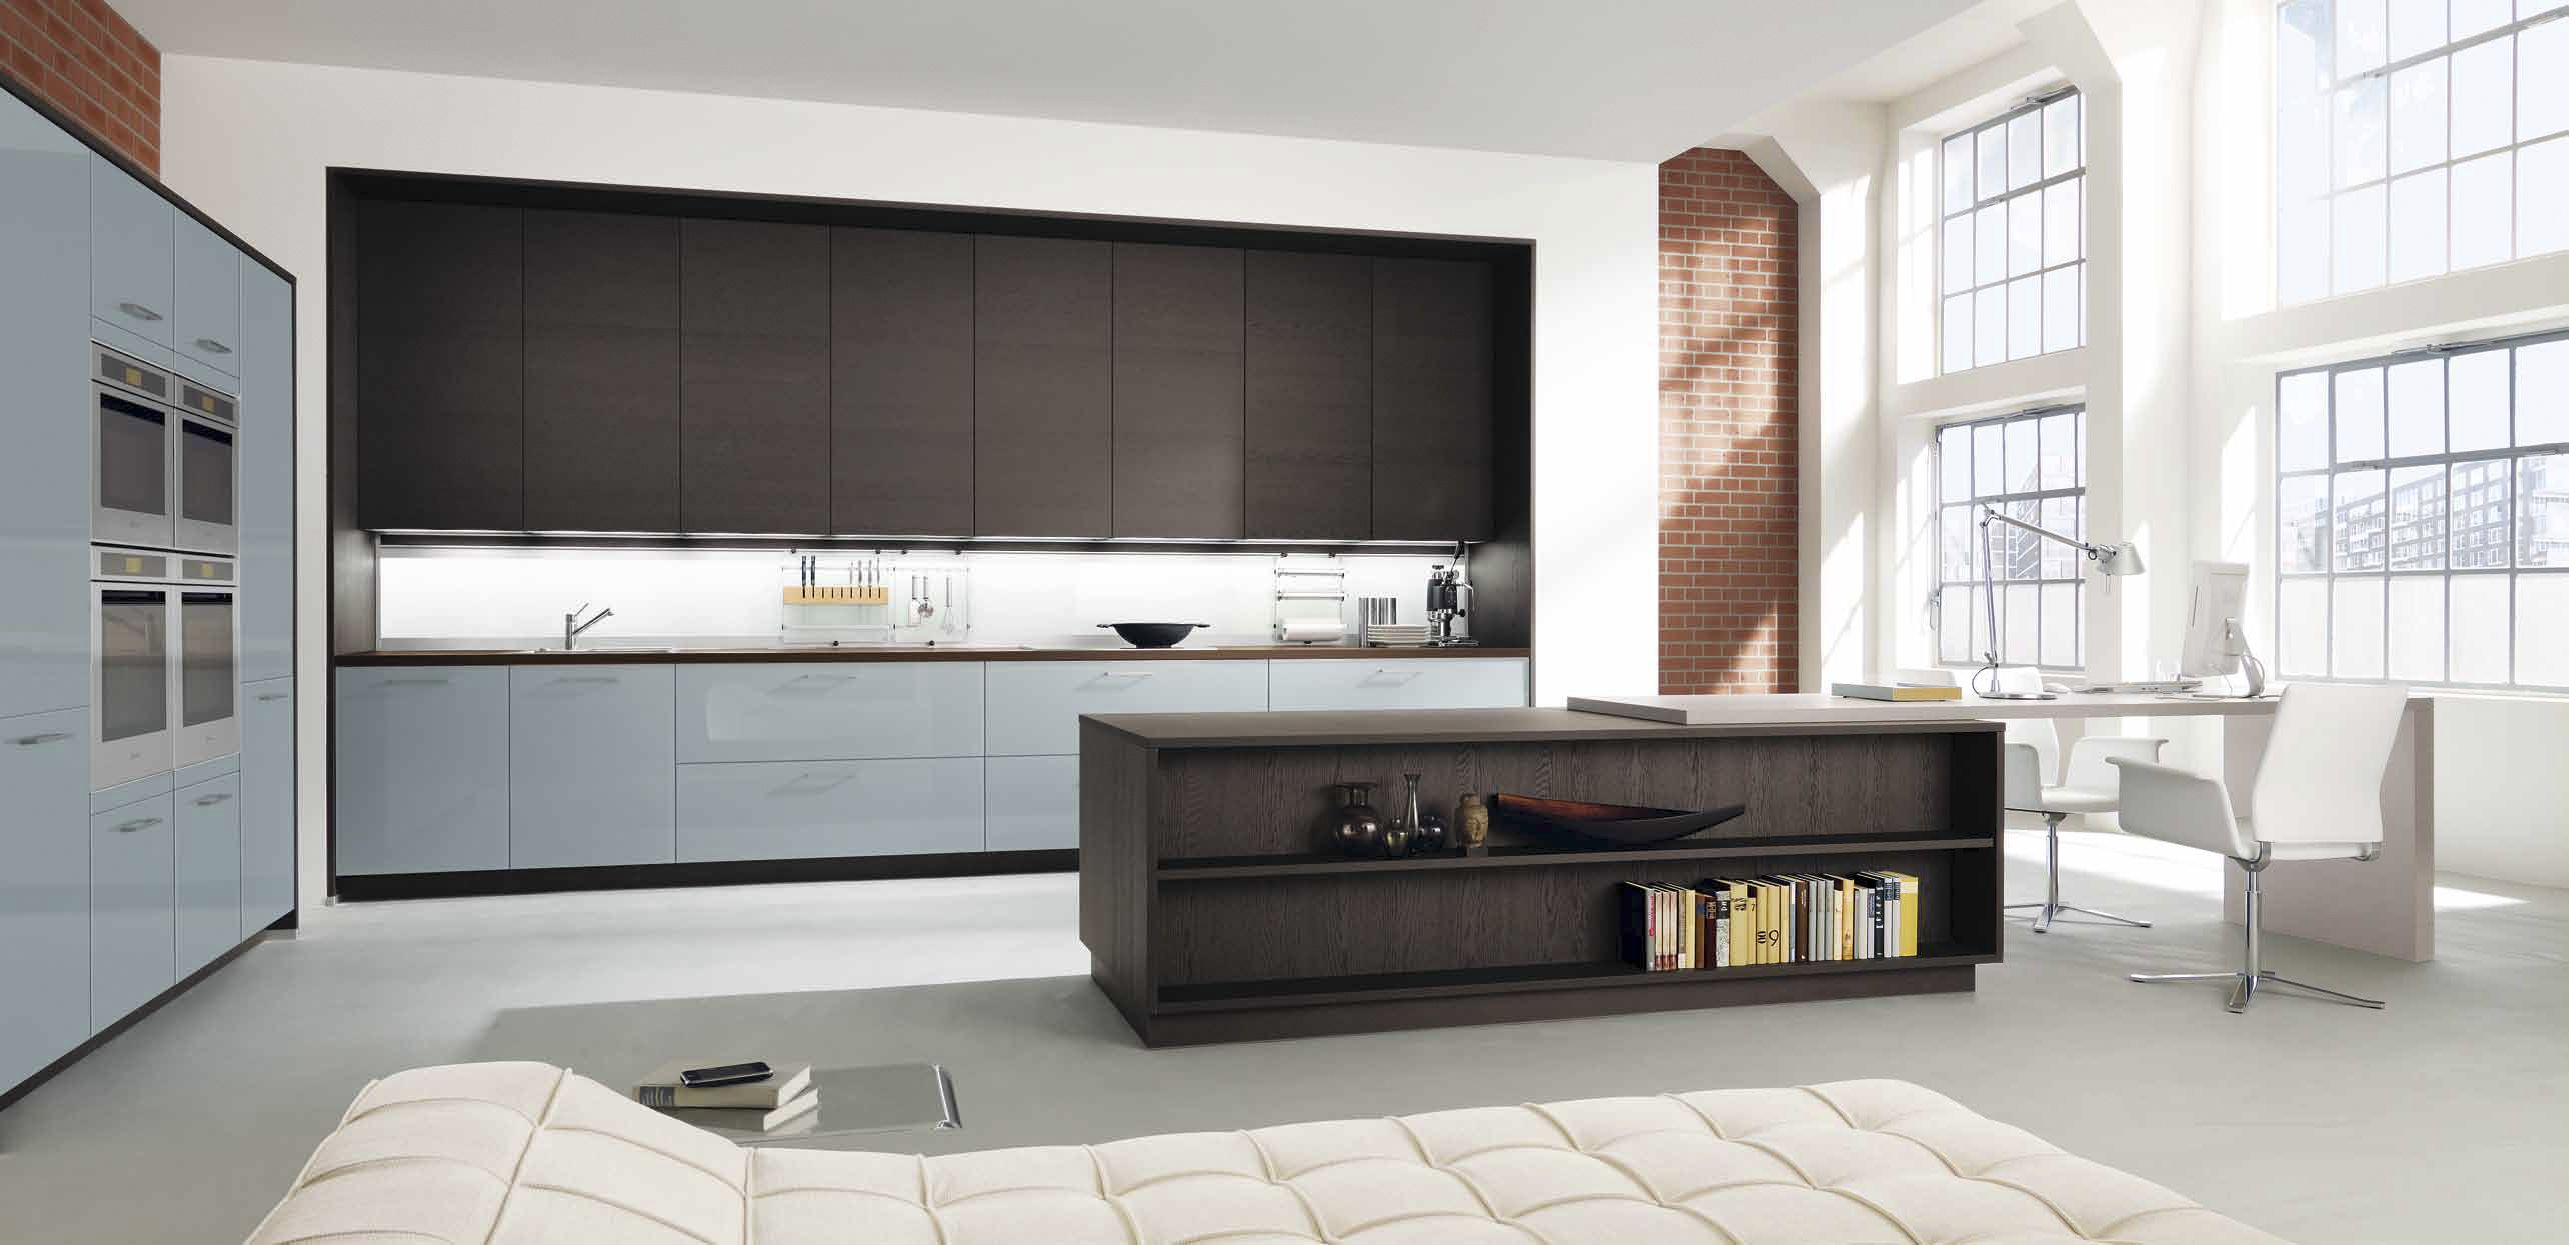 k che planen h ffner prospekte hofmeister kuchen ap 08 01 18 1 590768 jpg x planen. Black Bedroom Furniture Sets. Home Design Ideas